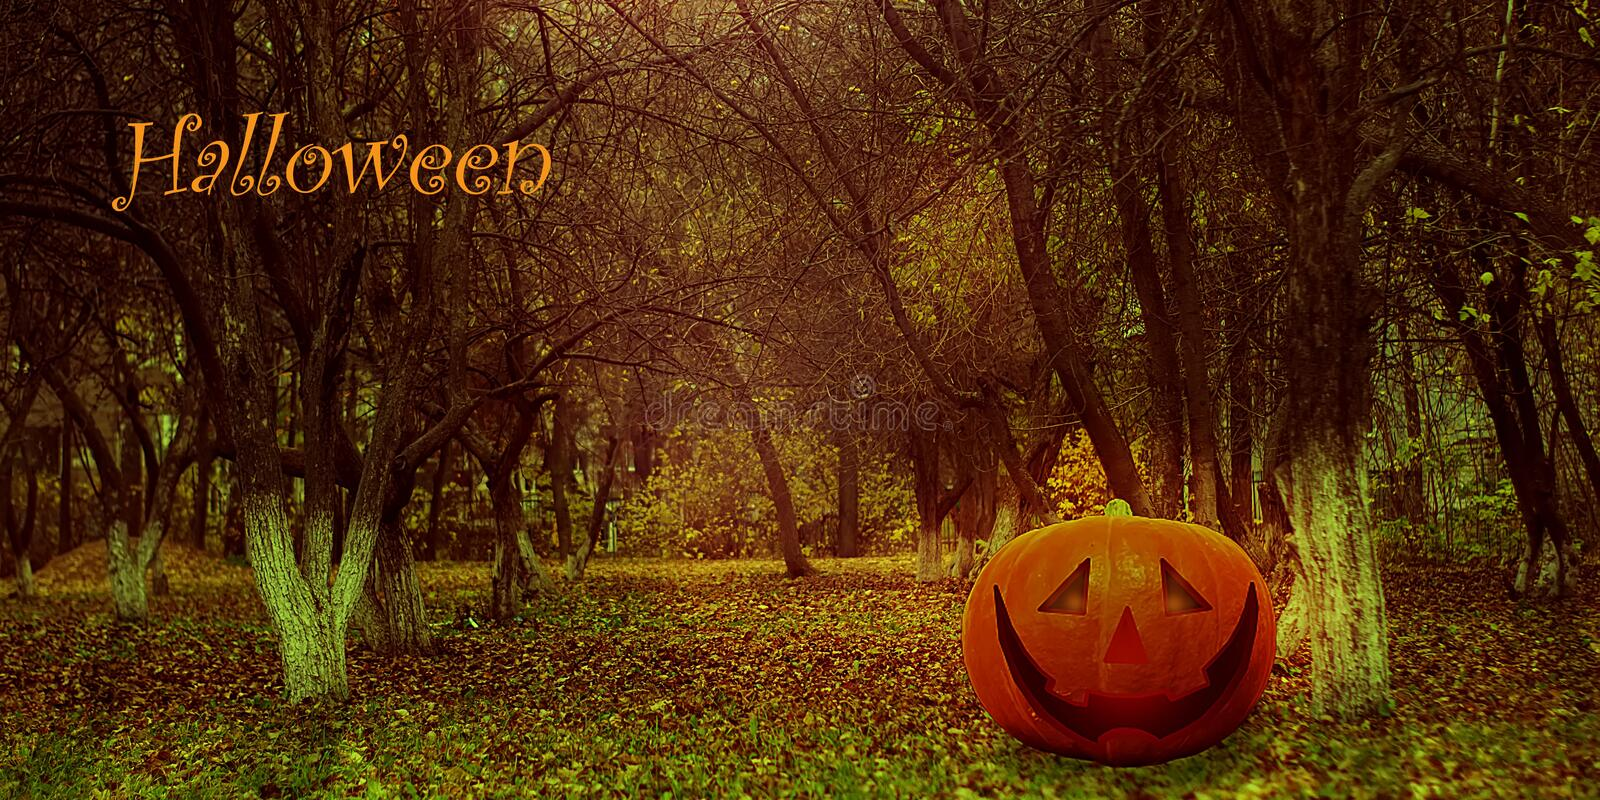 Halloween Mystical Jack O. Pumpkin Lantern in the Forest. Spooky Halloween Poster. Halloween background wallpaper with pumpkin. Jack lantern. The sinister eyes royalty free stock photography